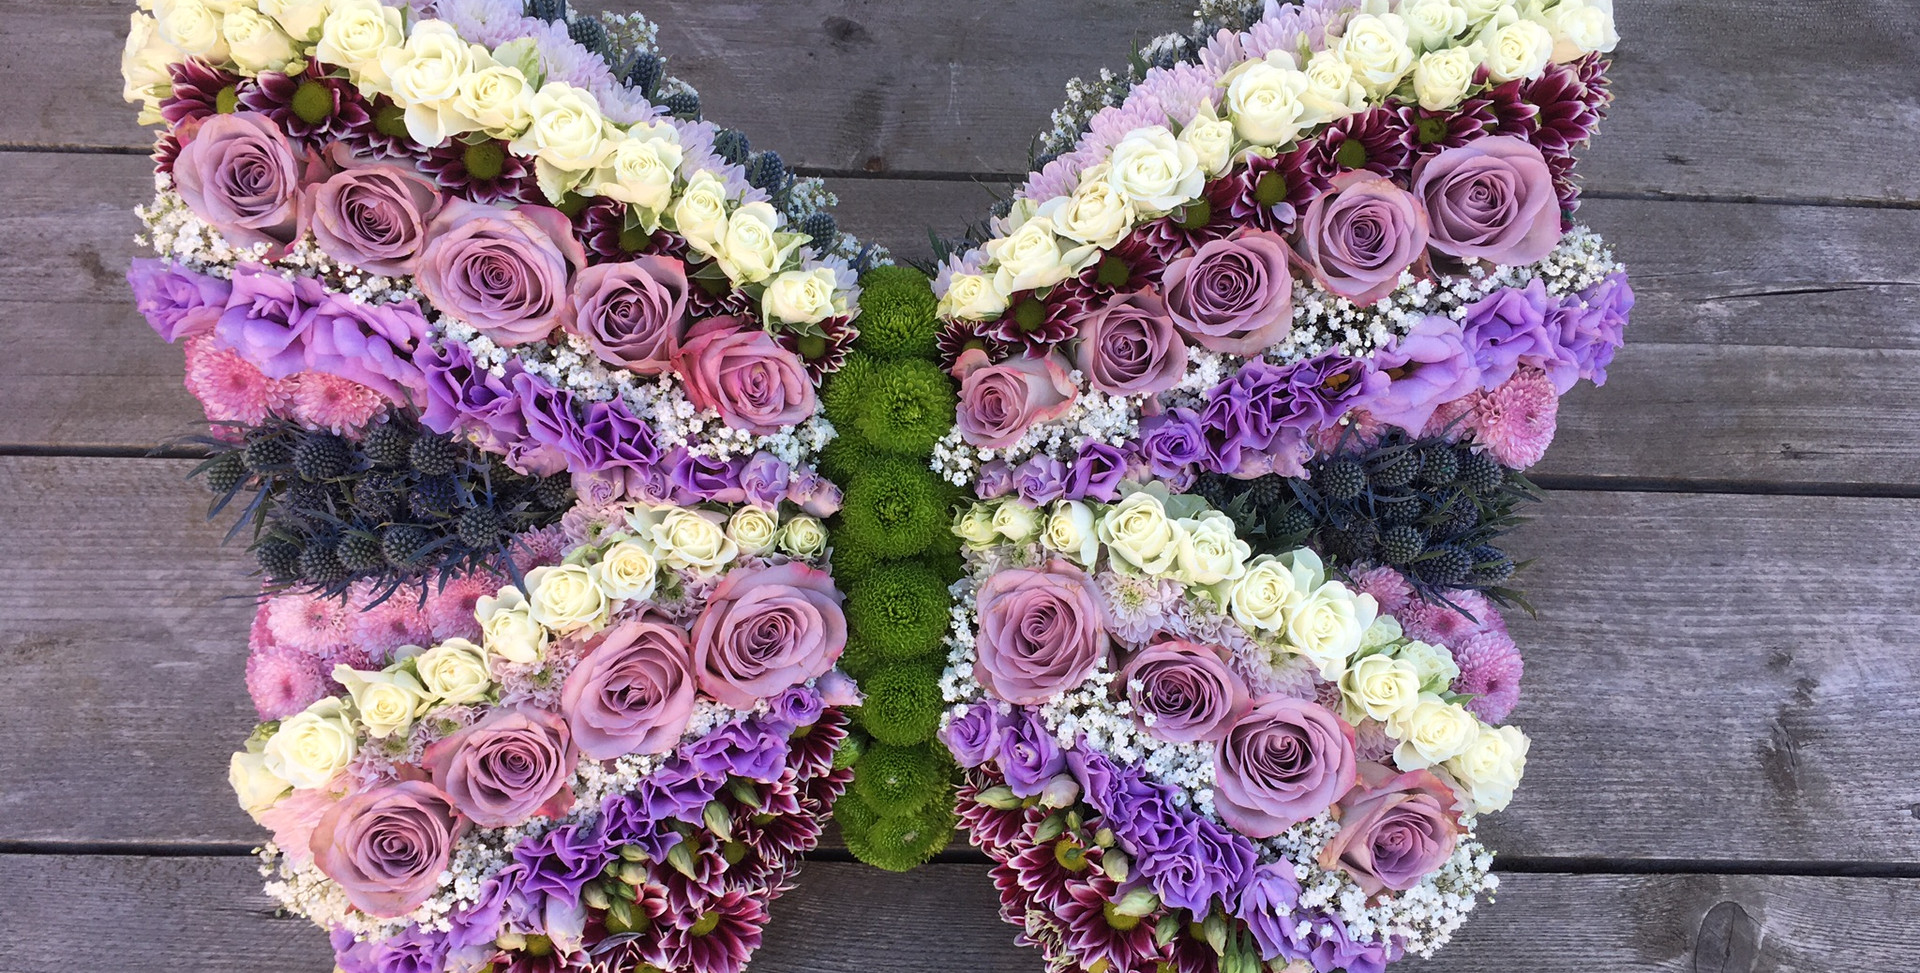 Bespoke Floral Tribute - Butterfly